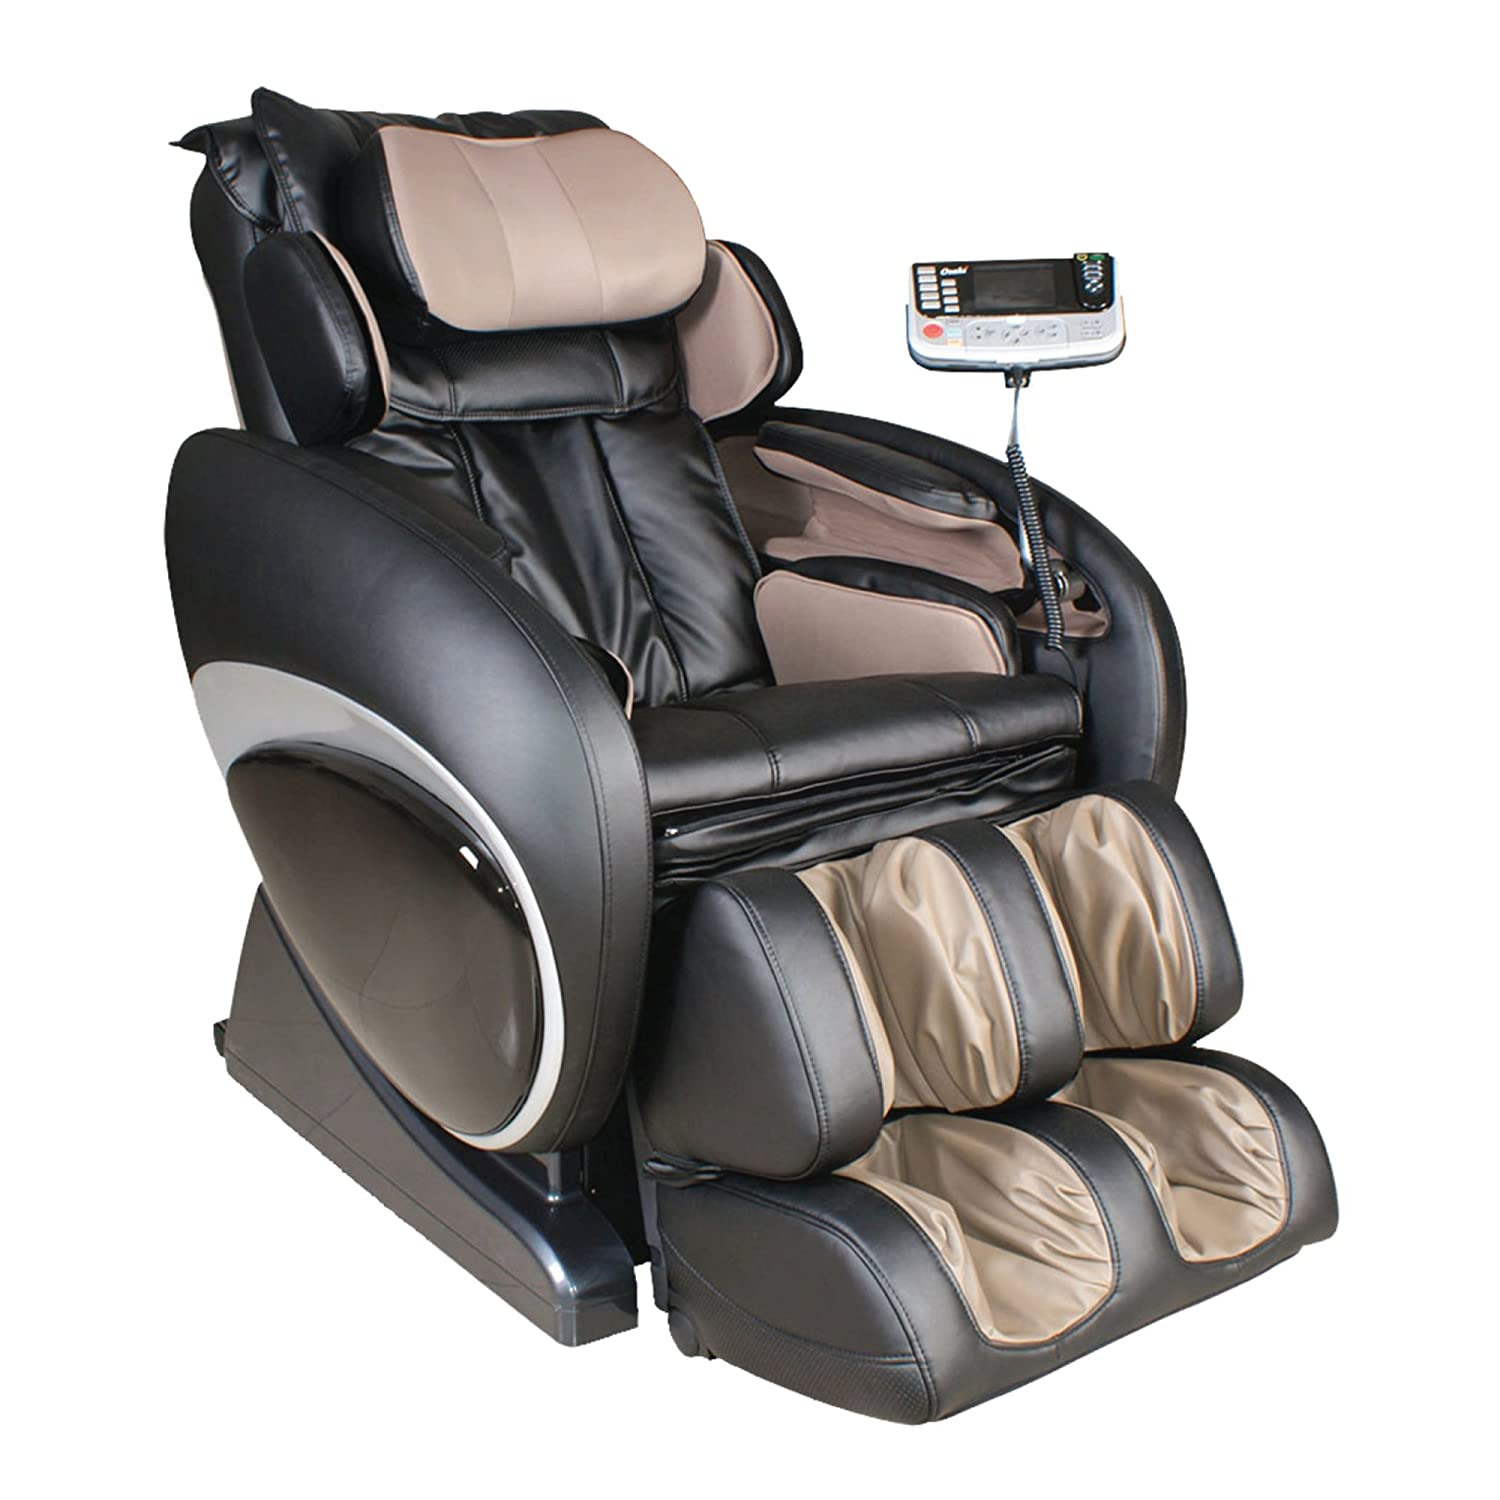 scan design amazon model dp gravity next zero roller osaki massagers os black unique technology body foot massage com computer chair generation